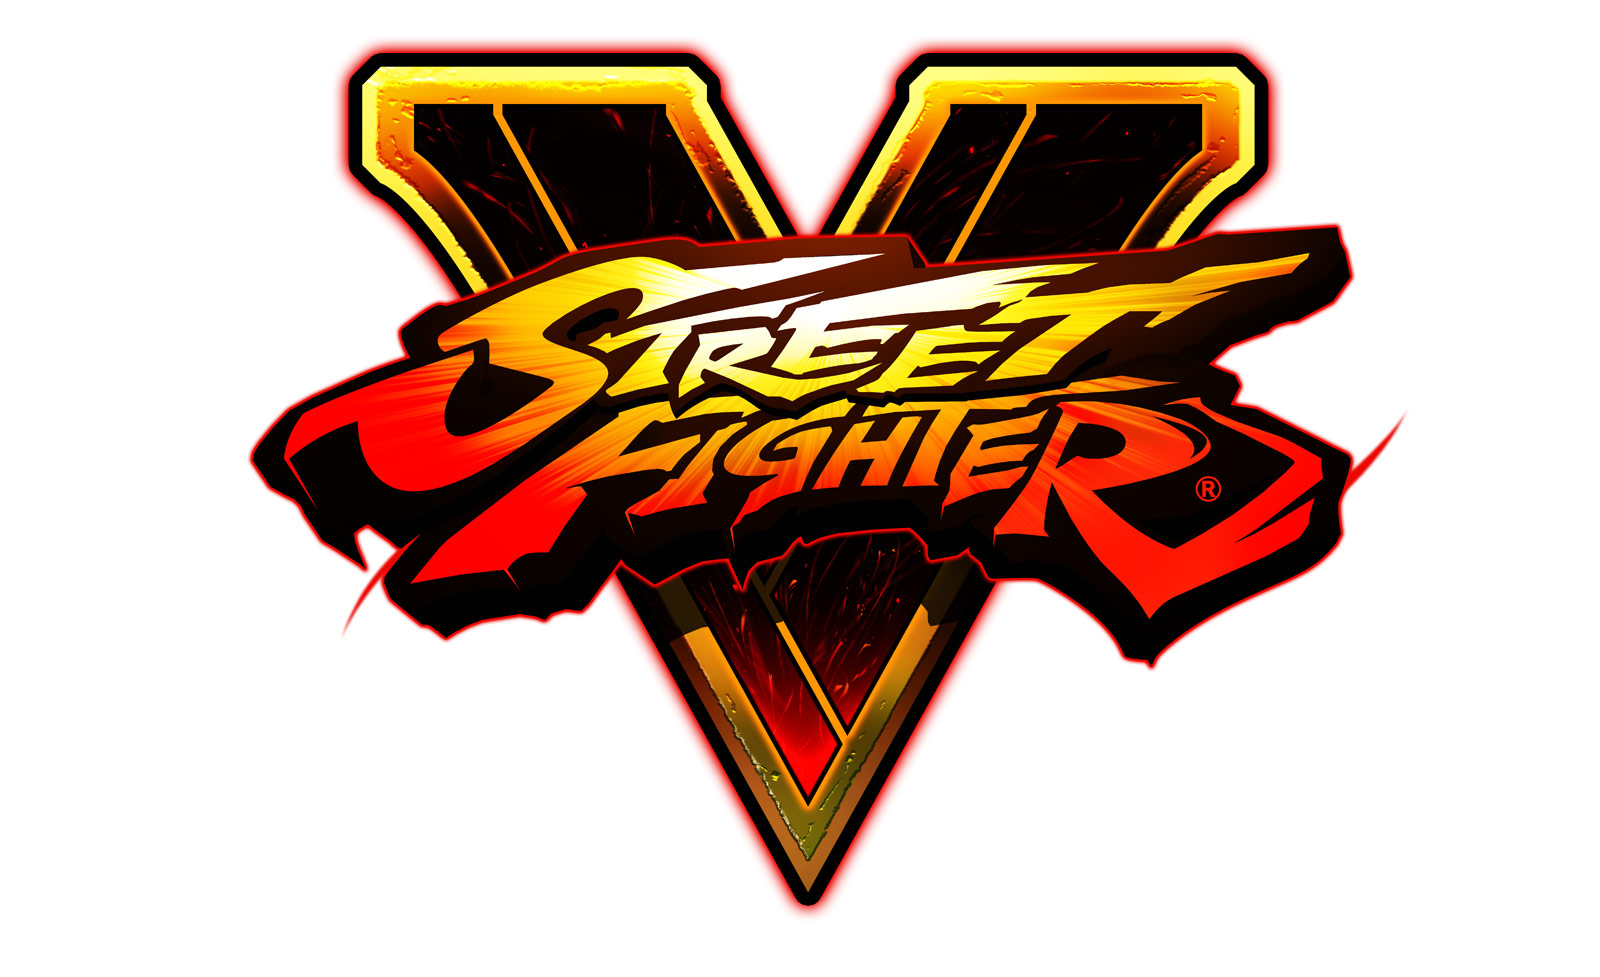 Street Fighter 5 high resolution screen shots, cover art and logo image #6